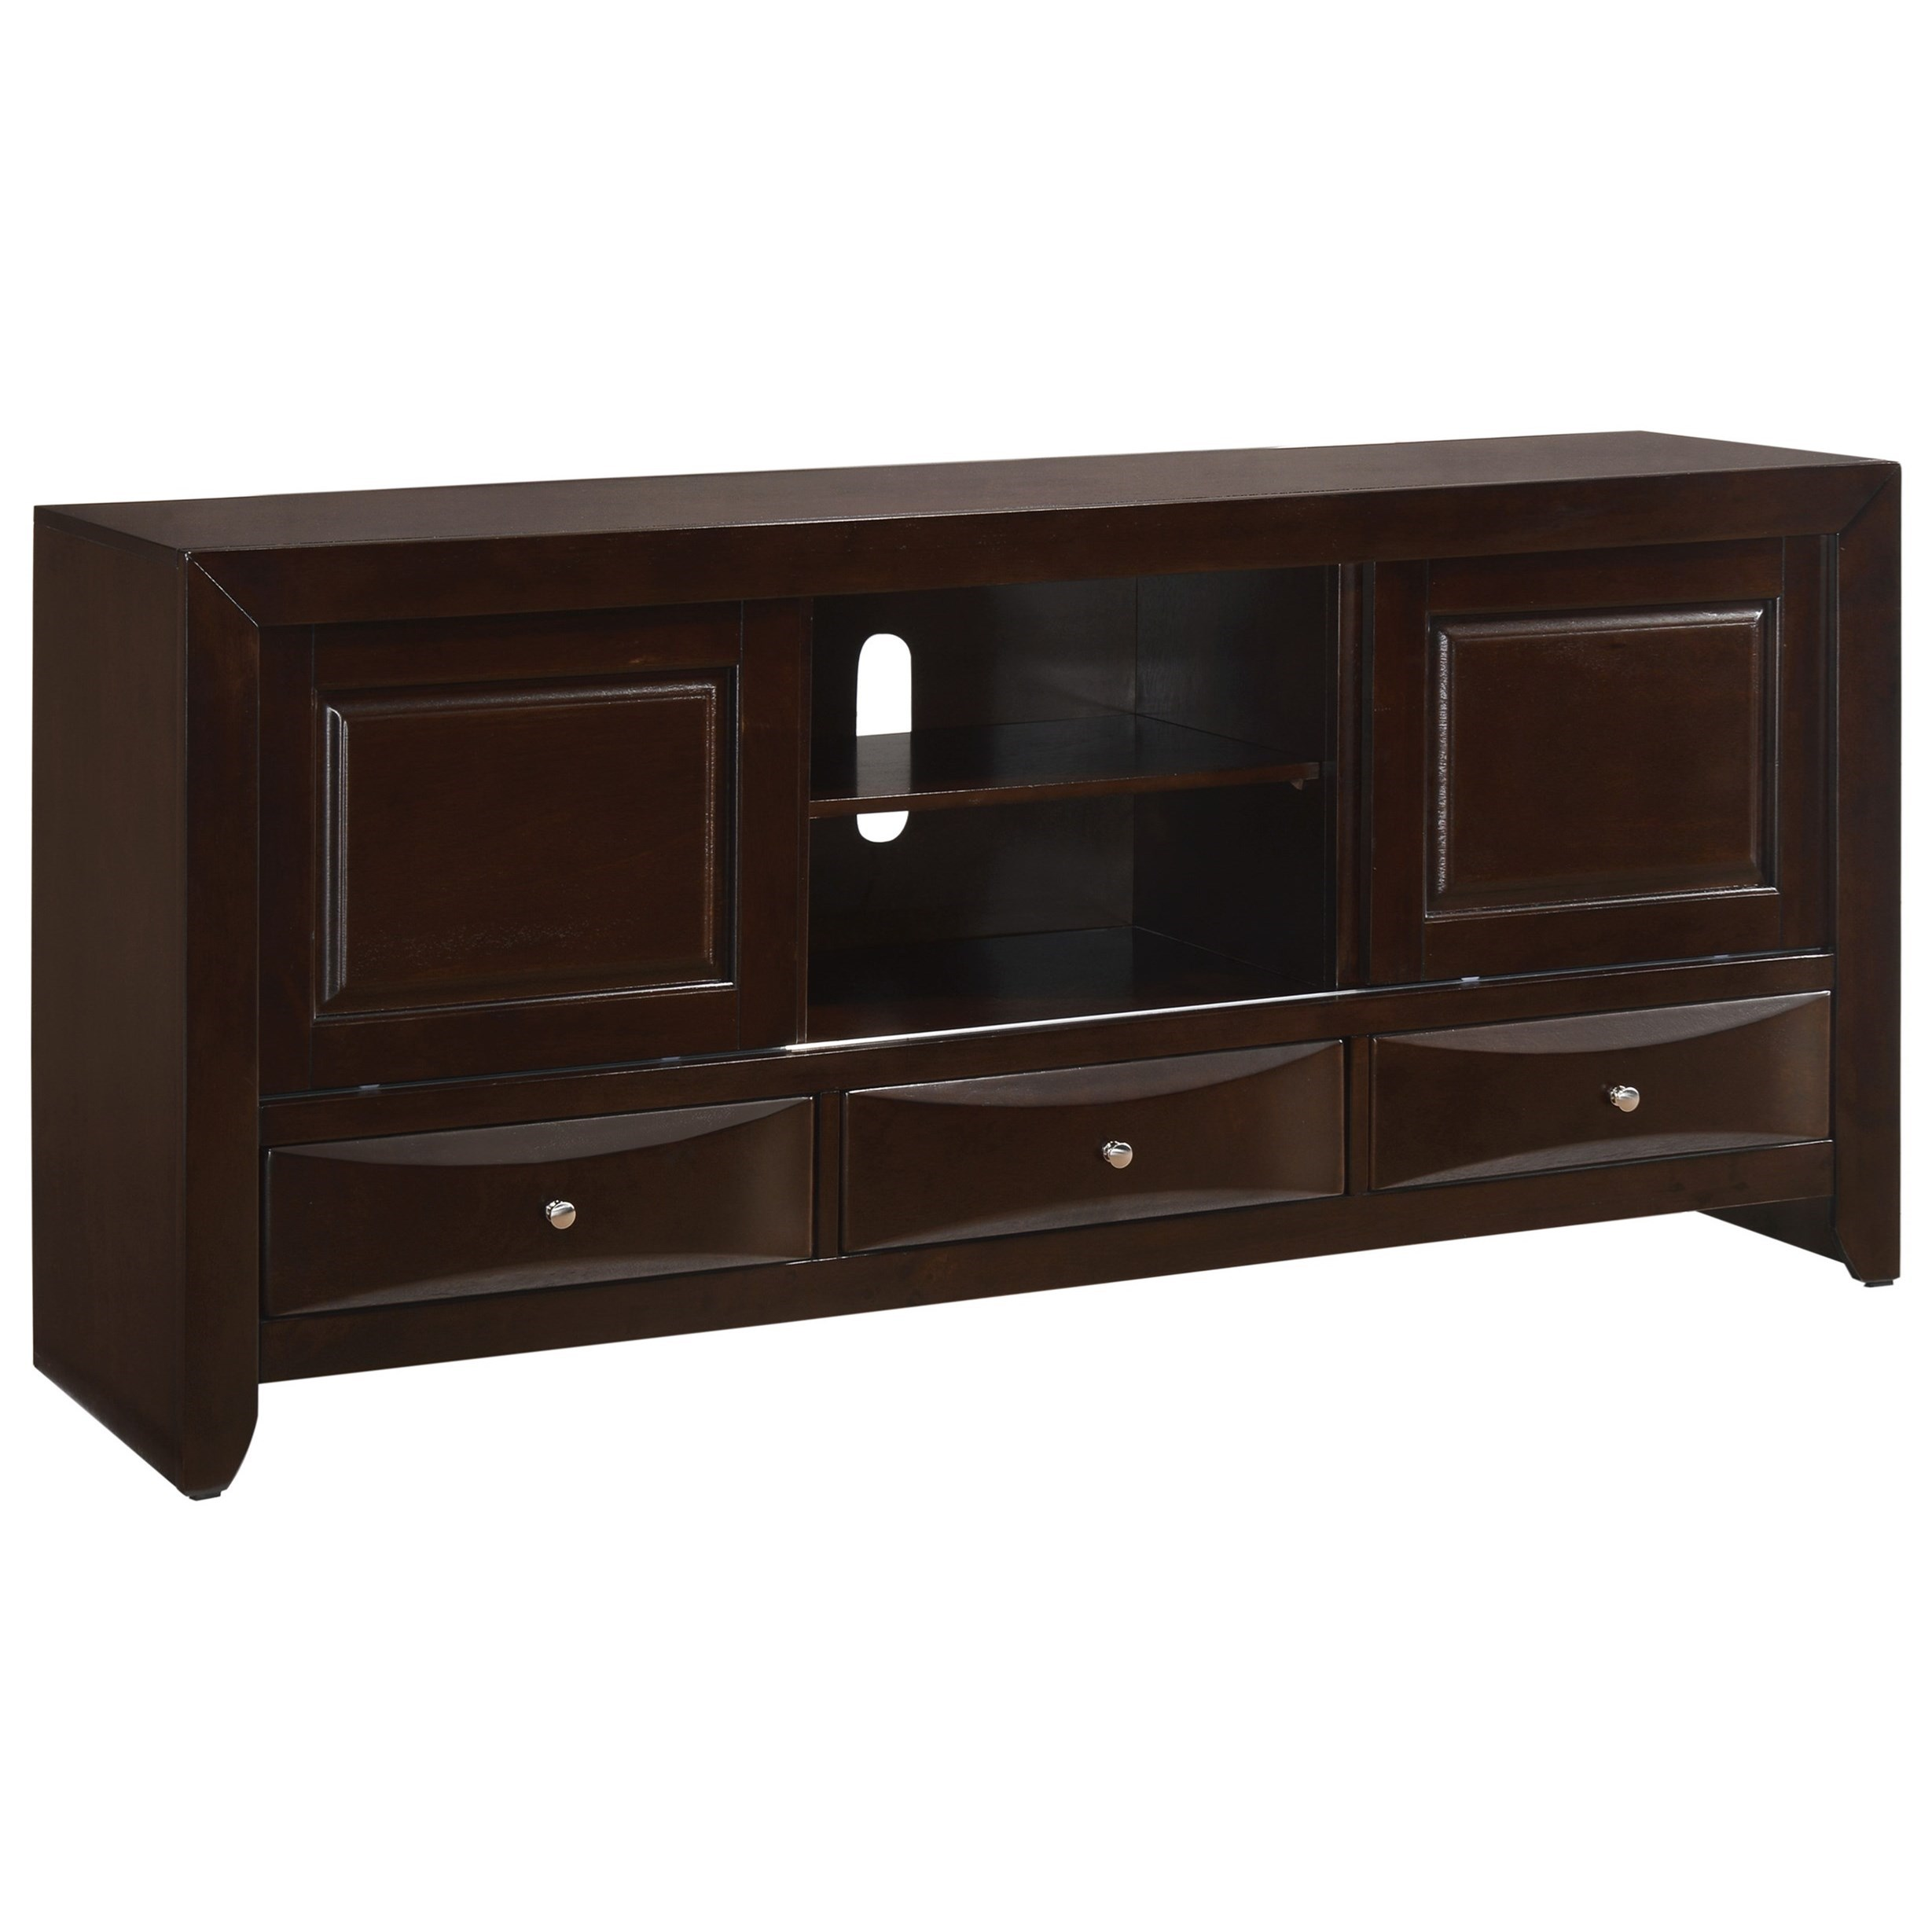 Emily TV Stand by Crown Mark at Sam Levitz Outlet